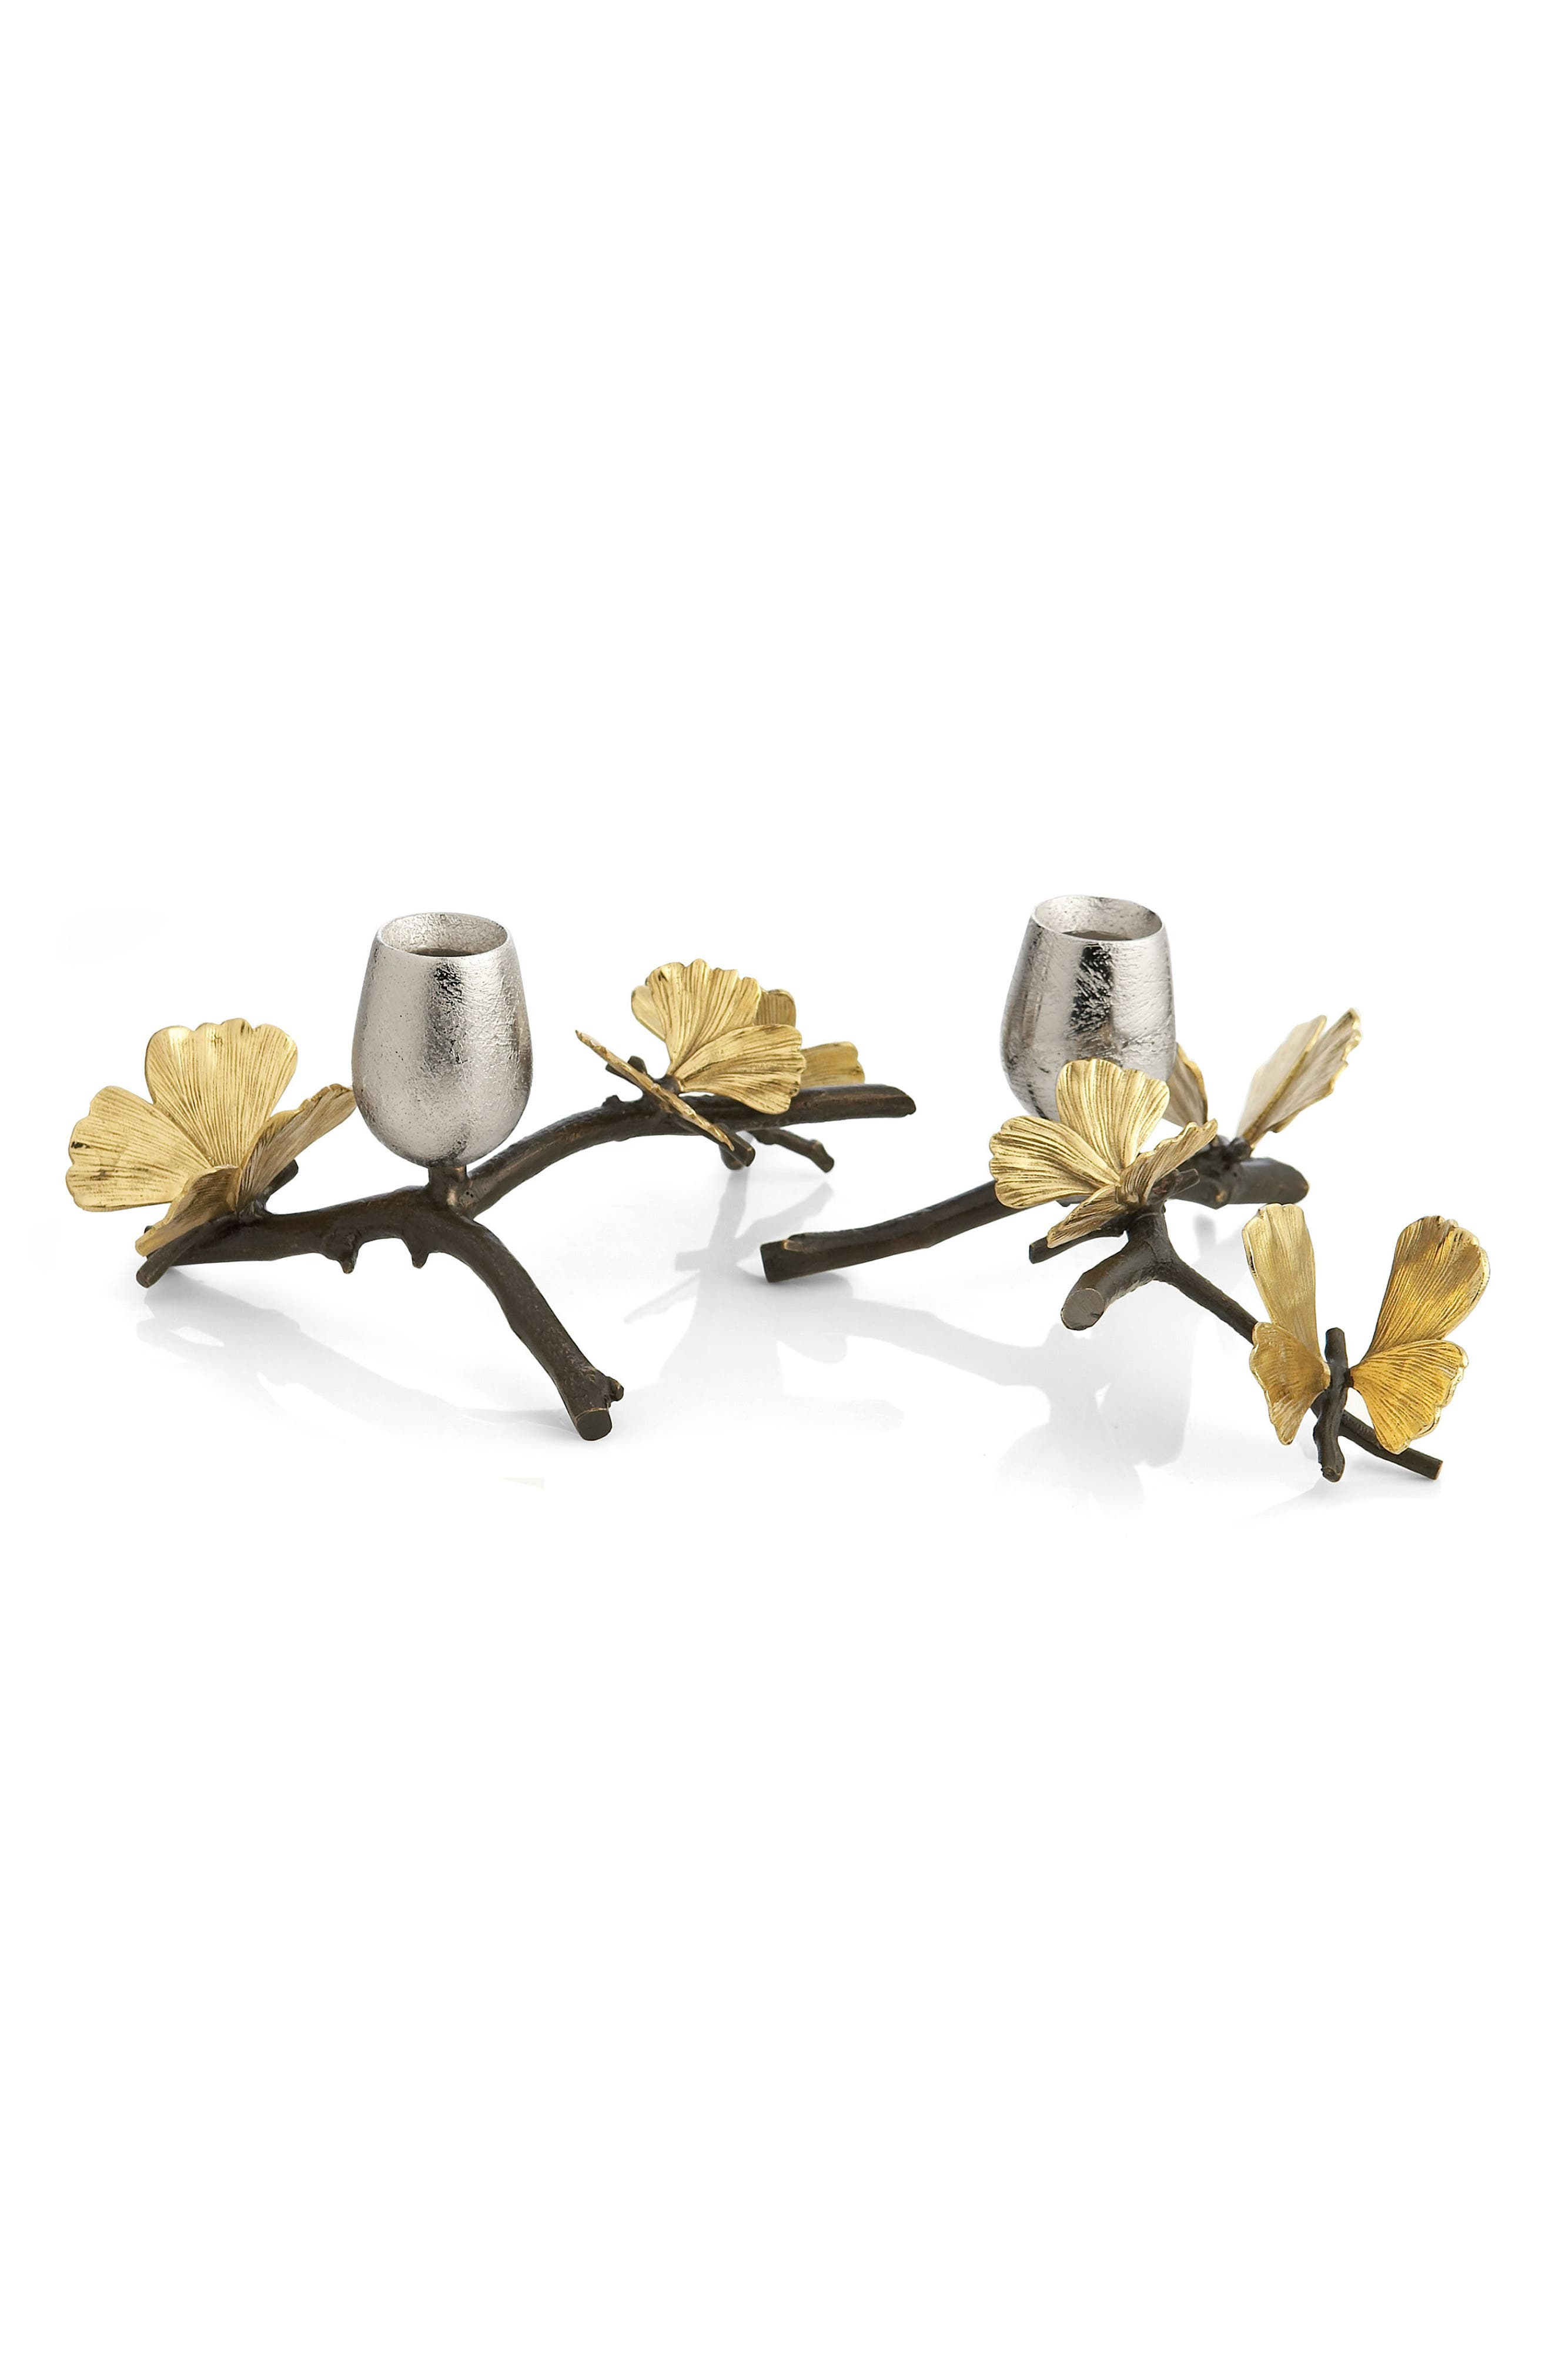 Michael Aram Butterfly Ginkgo Set of 2 Candle Holders